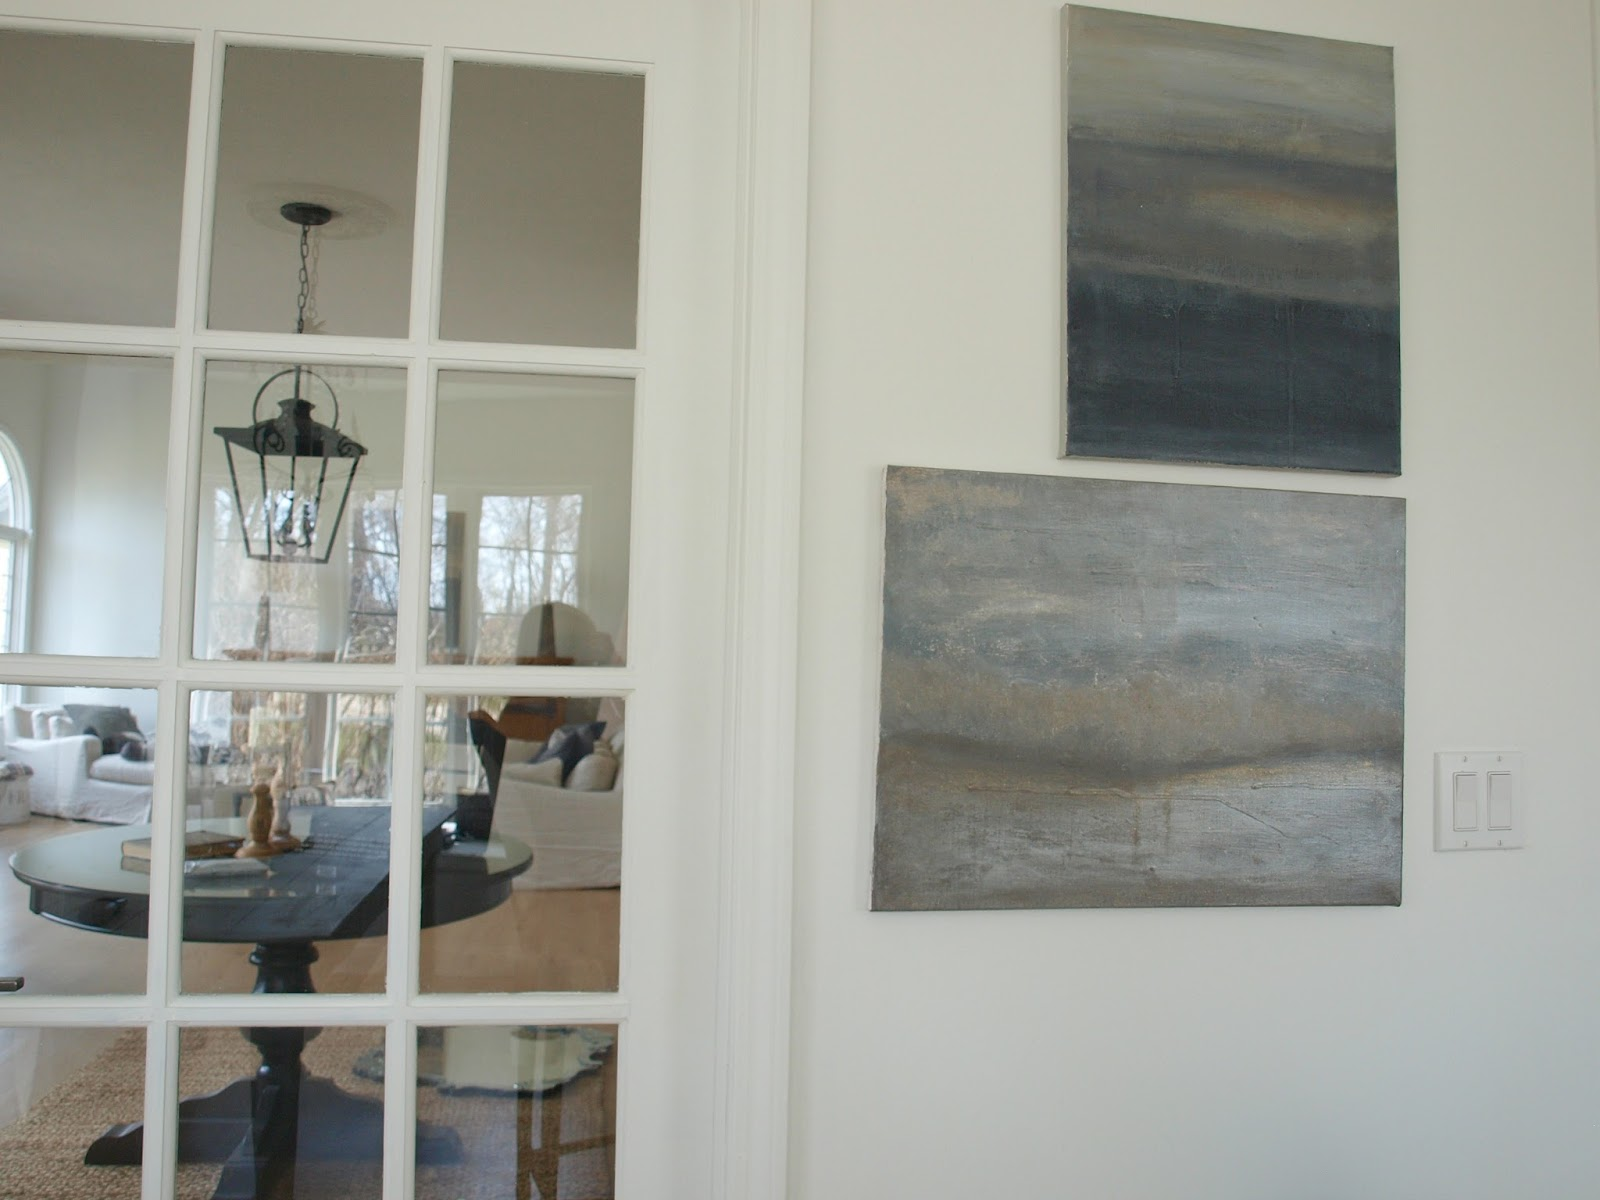 Original abstract seascape paintings by Michel of Hello Lovely Studio